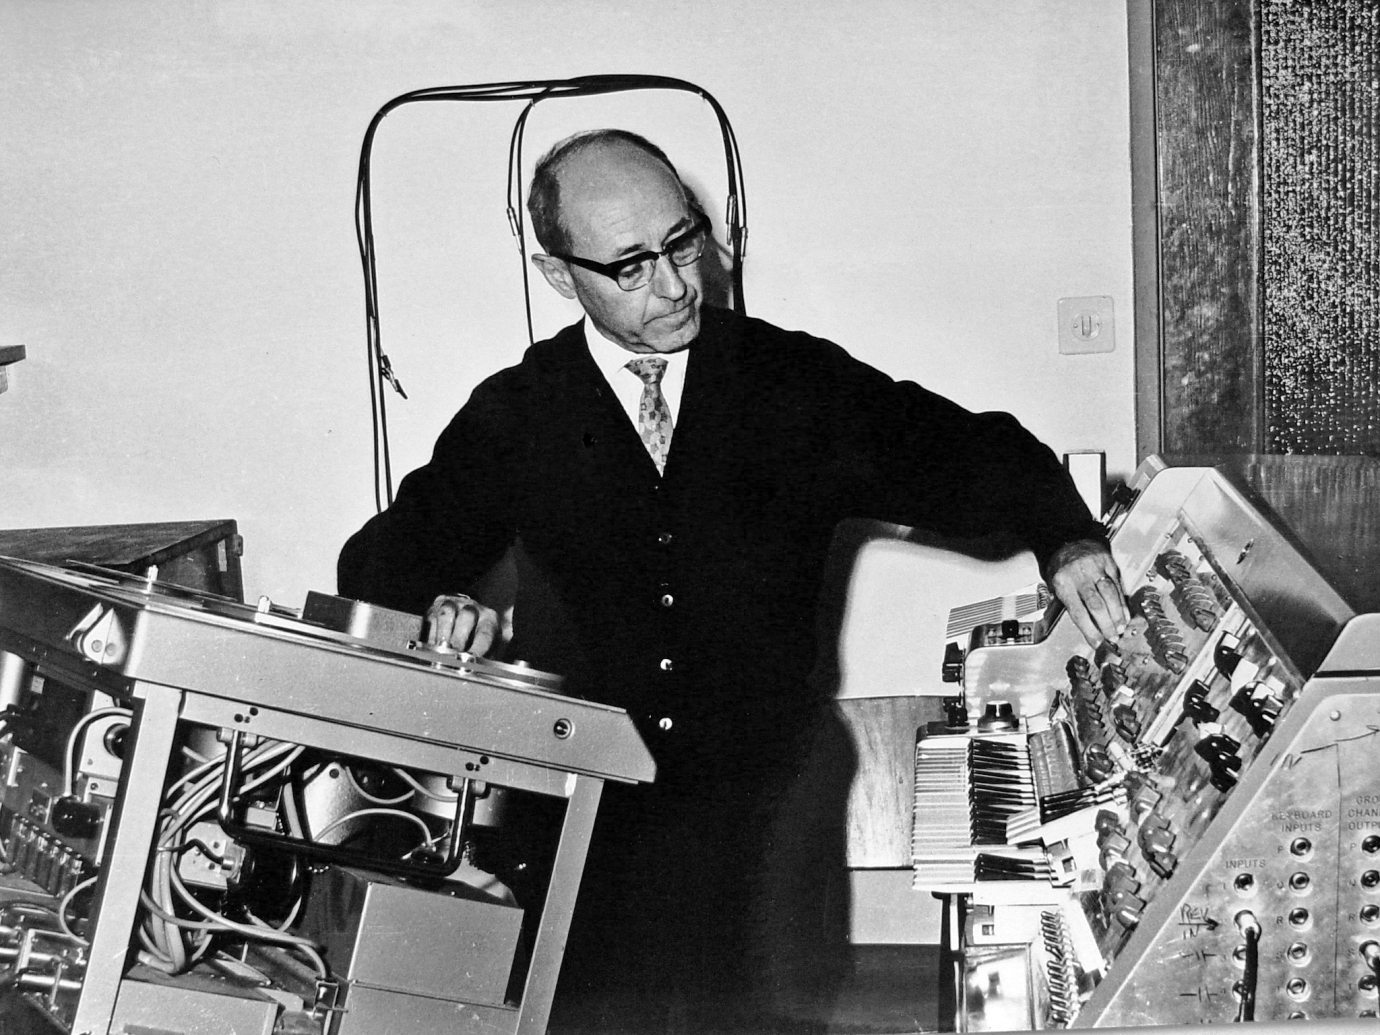 Josef_Tal_at_the_Electronic_Music_Studio